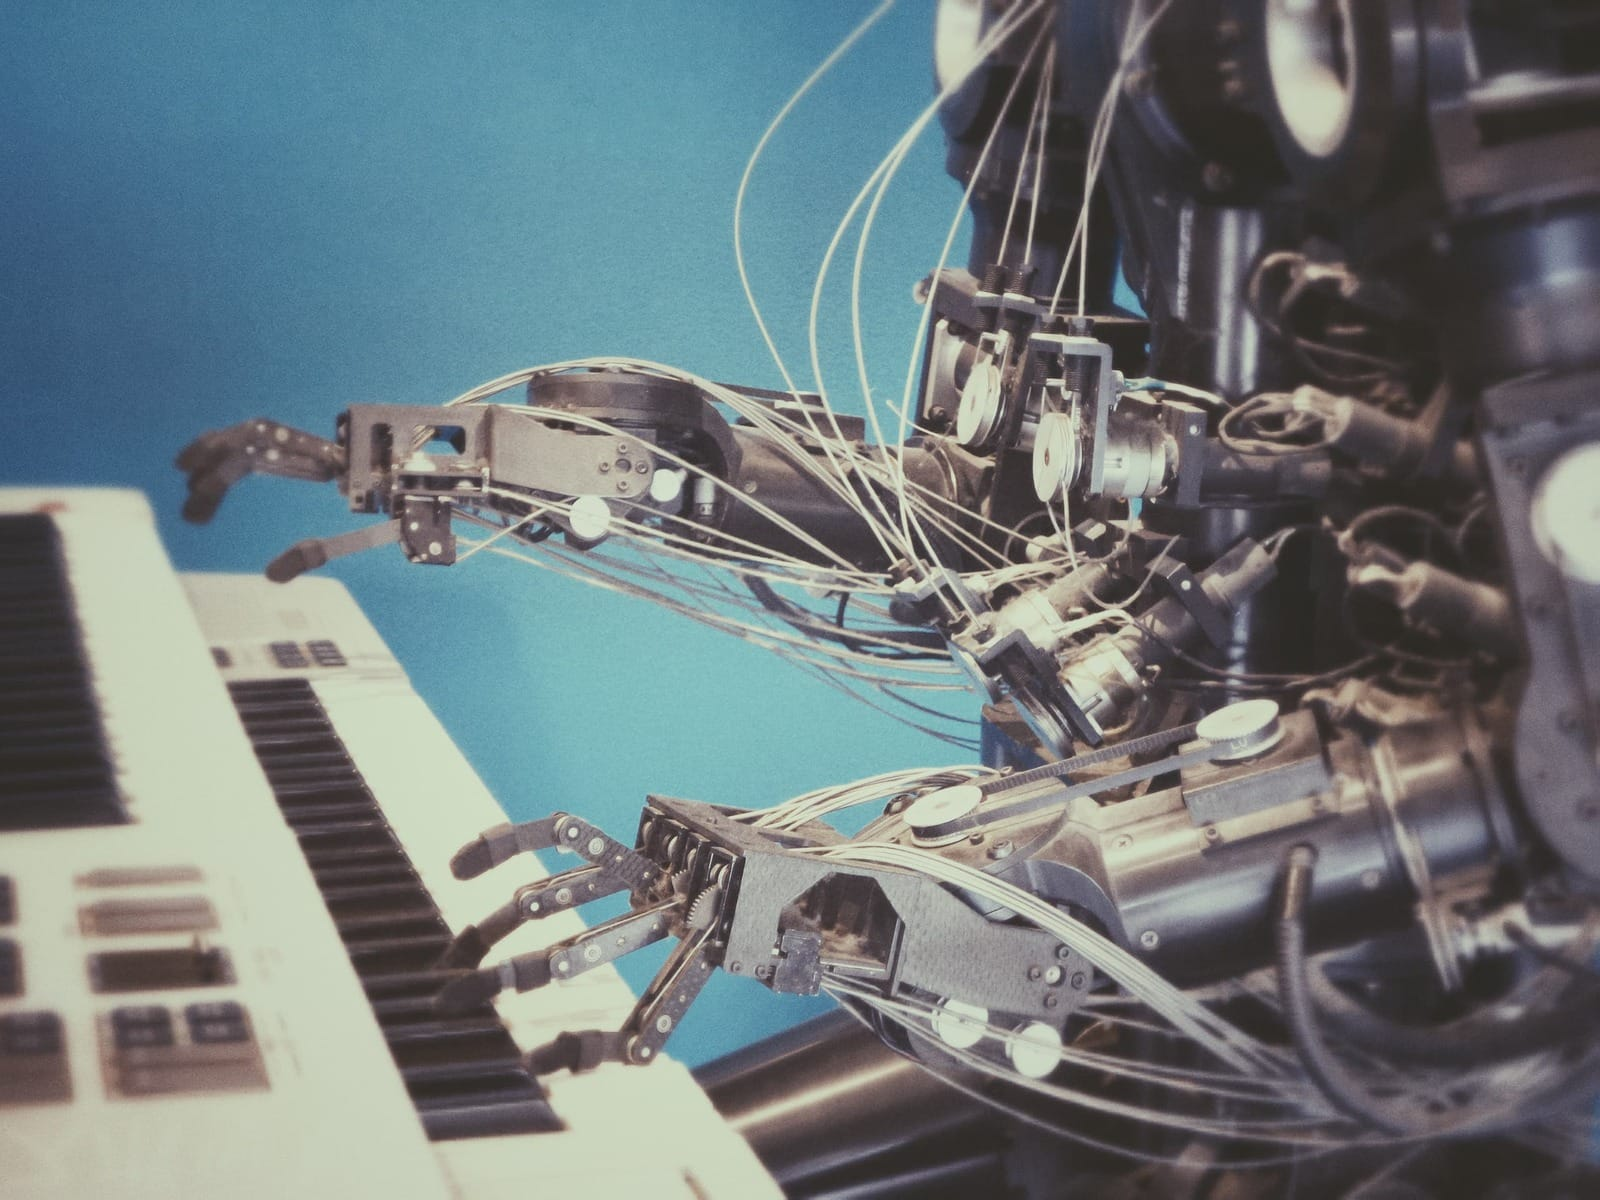 How artificial is artificial intelligence?